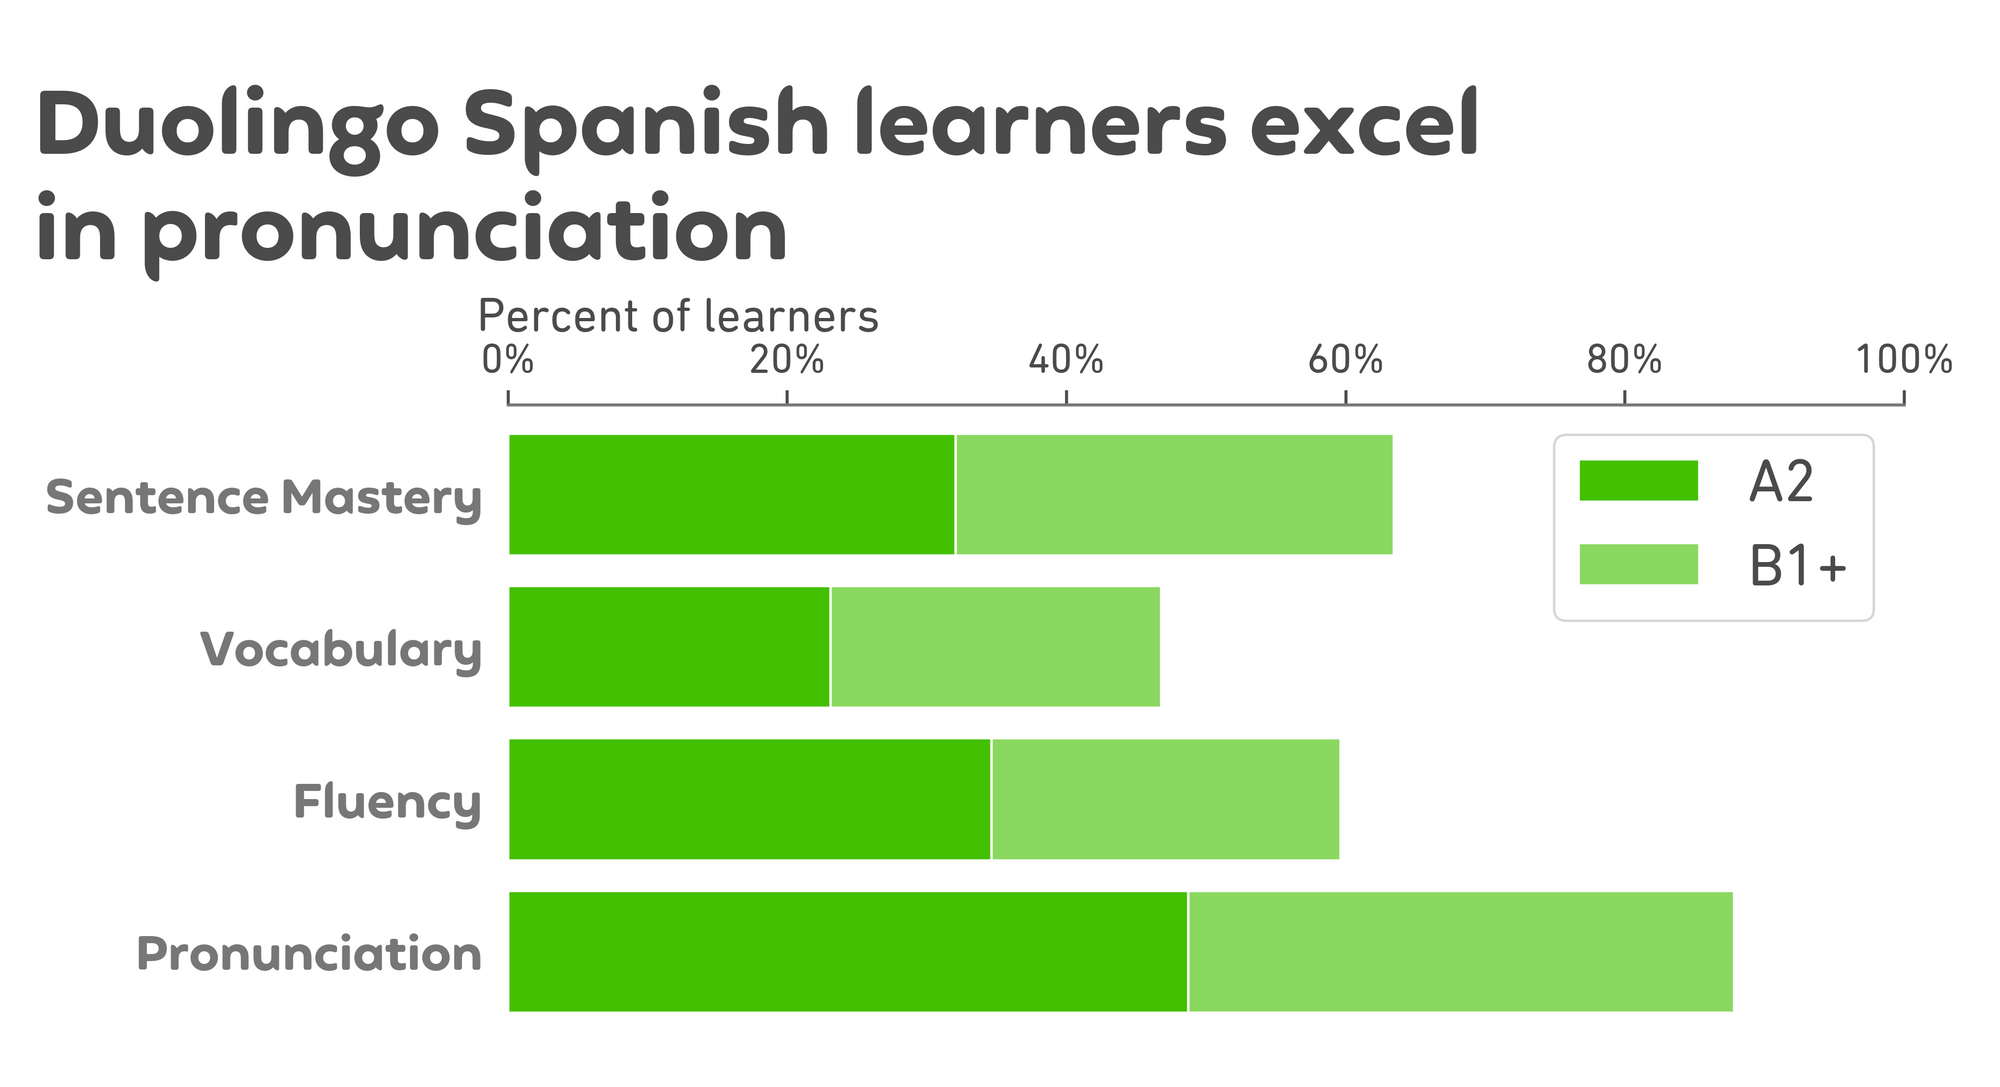 """Graph of results. The title is """"Duolingo Spanish leaners excel in pronunciation,"""" and below is a chart like the overall scores above. Now there are 4 horizontal bars, one for each speaking subscore, and the x-axis is percent of learners from 0 to 100. Each bar is divided into a dark green section on the left and a light green section on the right. For sentence mastery, the dark green bar extends to about 32% for A2 achievement and the light green continues to about 62% for B1 or higher. For vocabulary, the dark green bar extends to about 22% for A2 and the light green continues to about 45% for B1 or higher. For fluency, the dark green bar extends to about 35% for A2 and the light green continues to about 60% for B1 or higher. Finally, for pronunciation, the dark green extends to about 50% for A2 and the light green continues to about 90% for B1 or higher."""